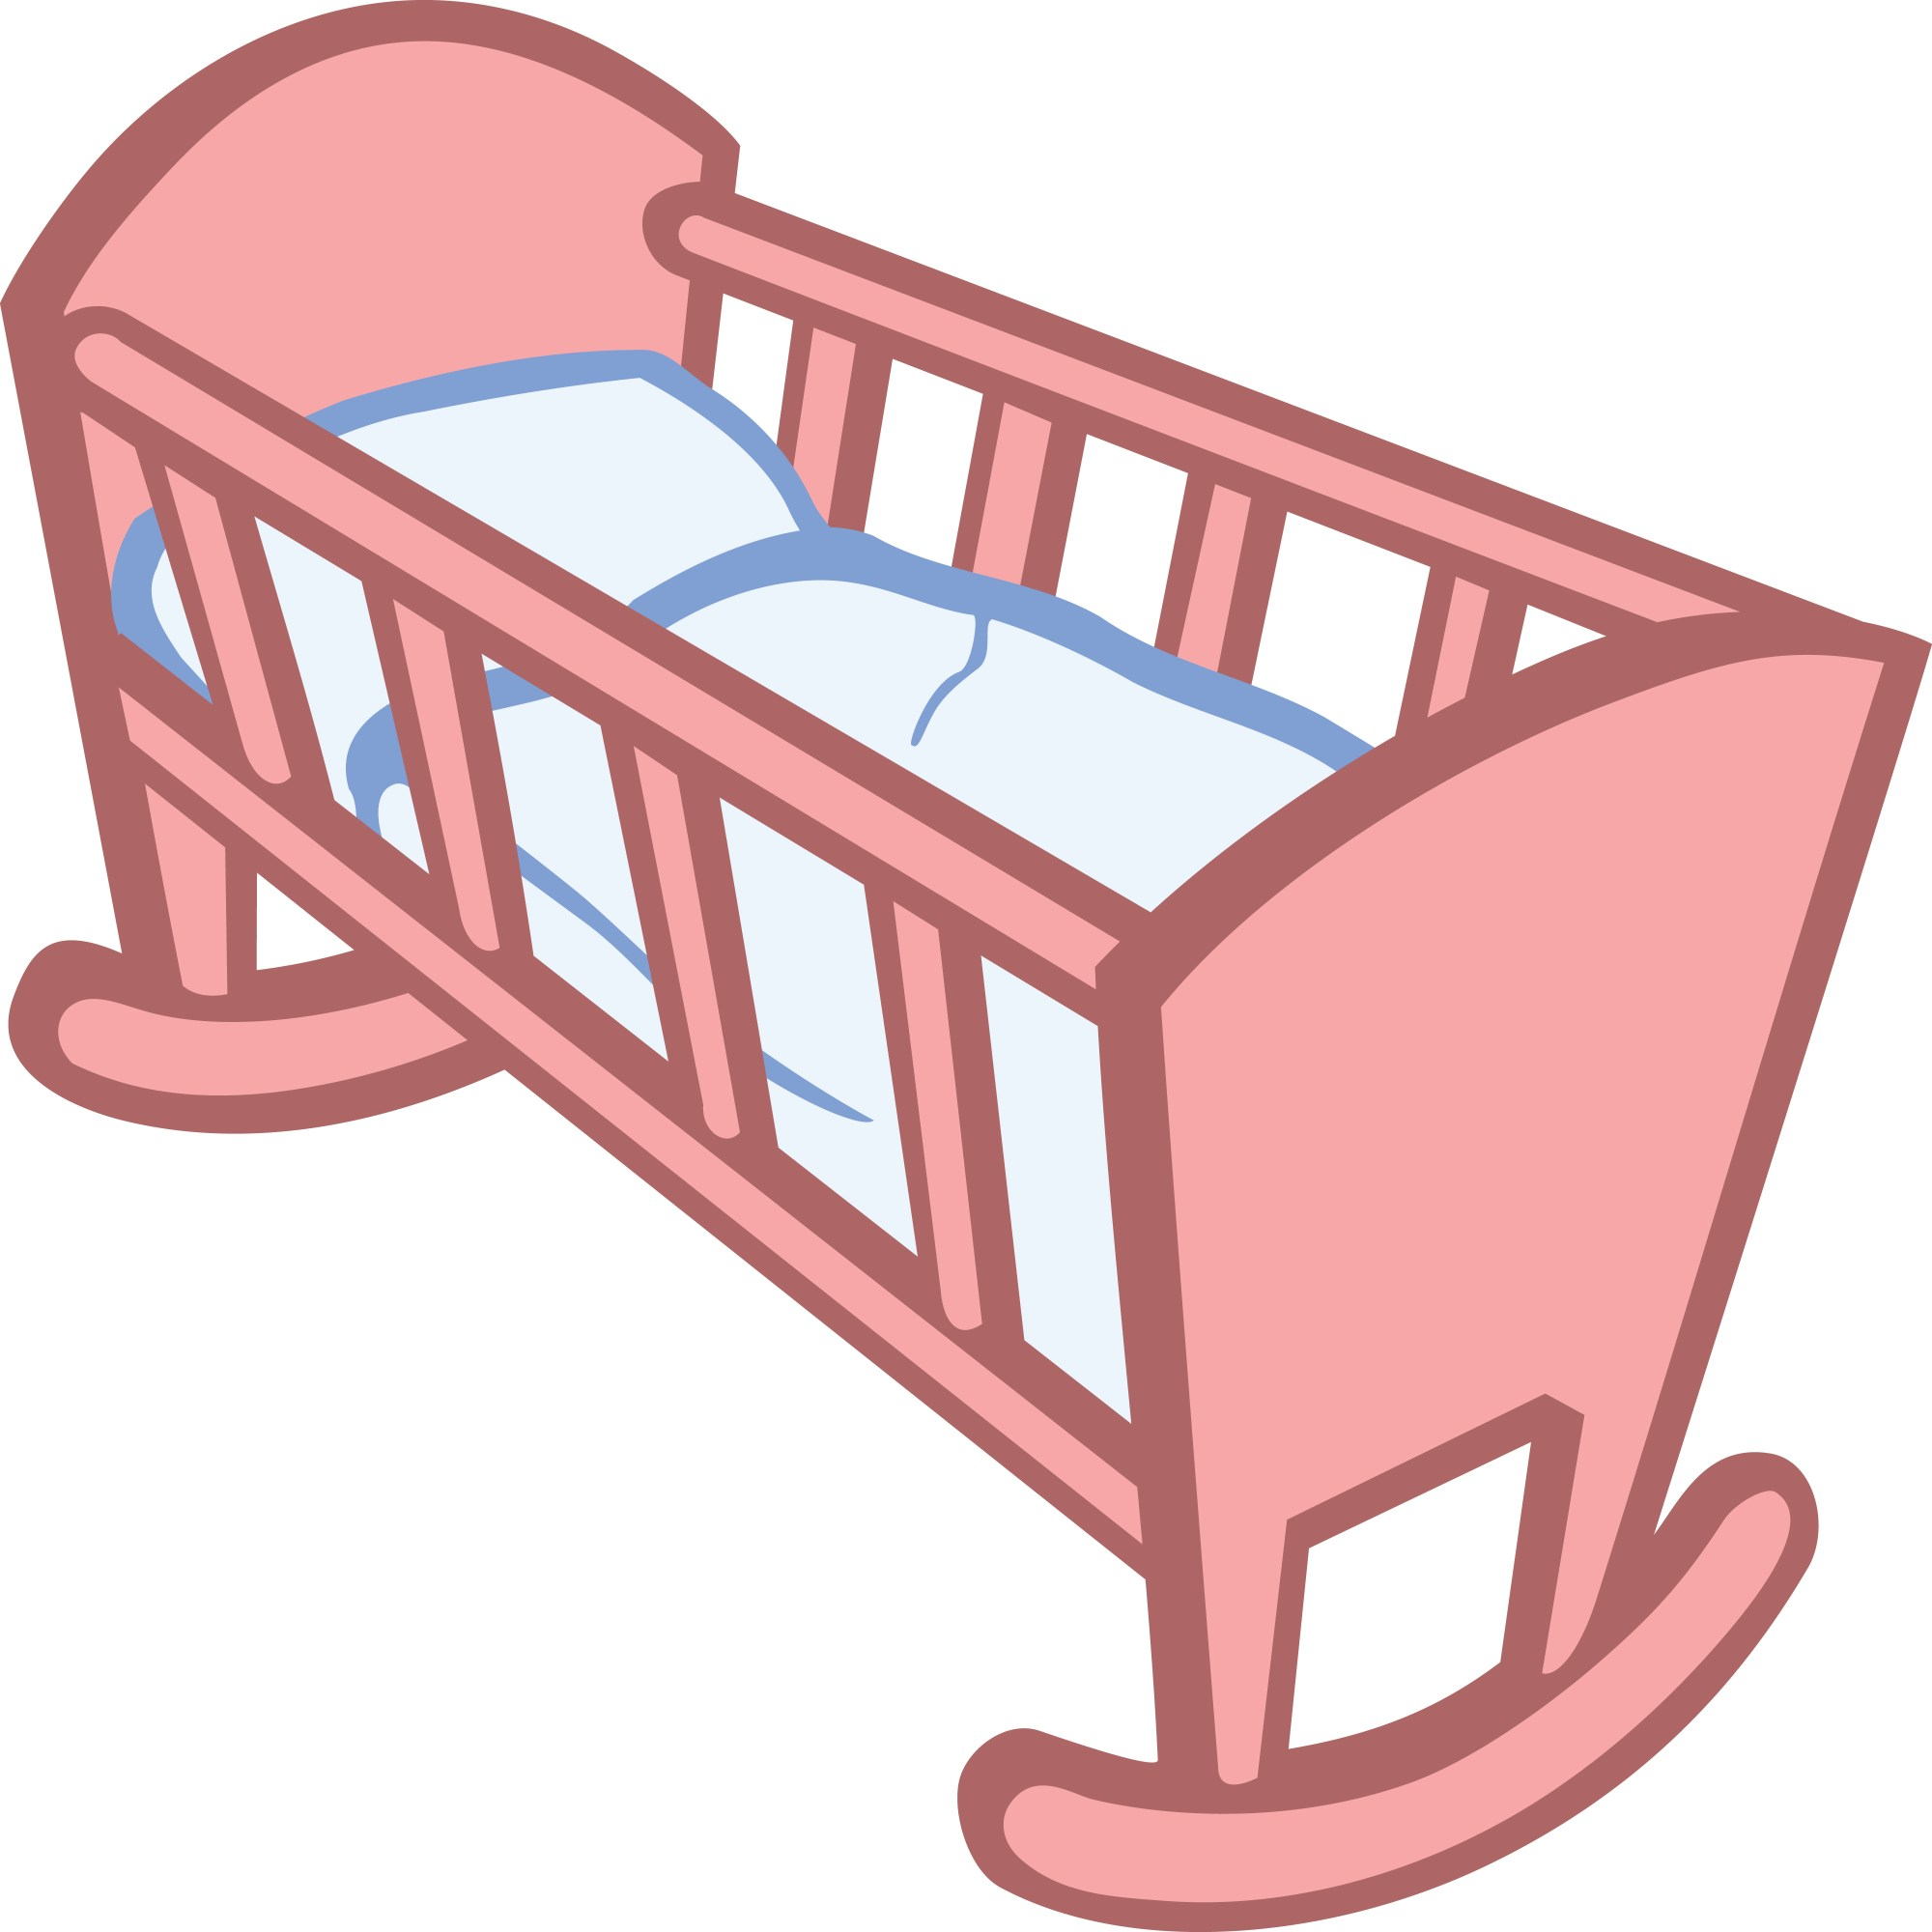 hight resolution of free clipart of a baby crib 00011650